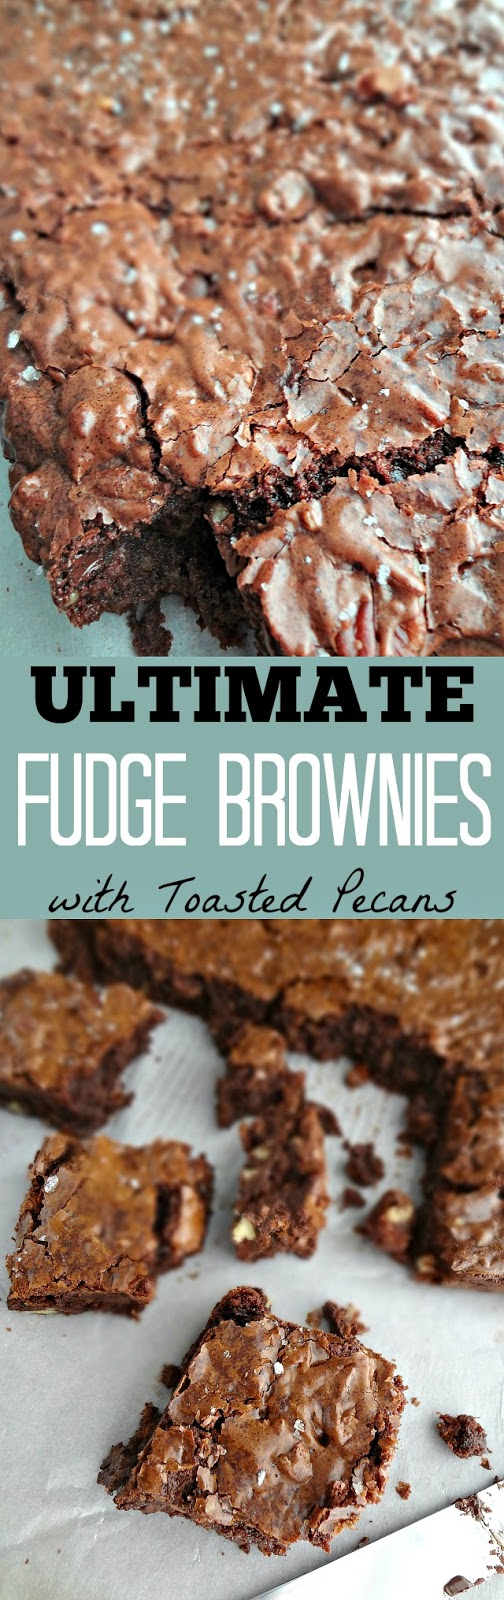 Ultimate Fudge Brownies with Toasted Pecans